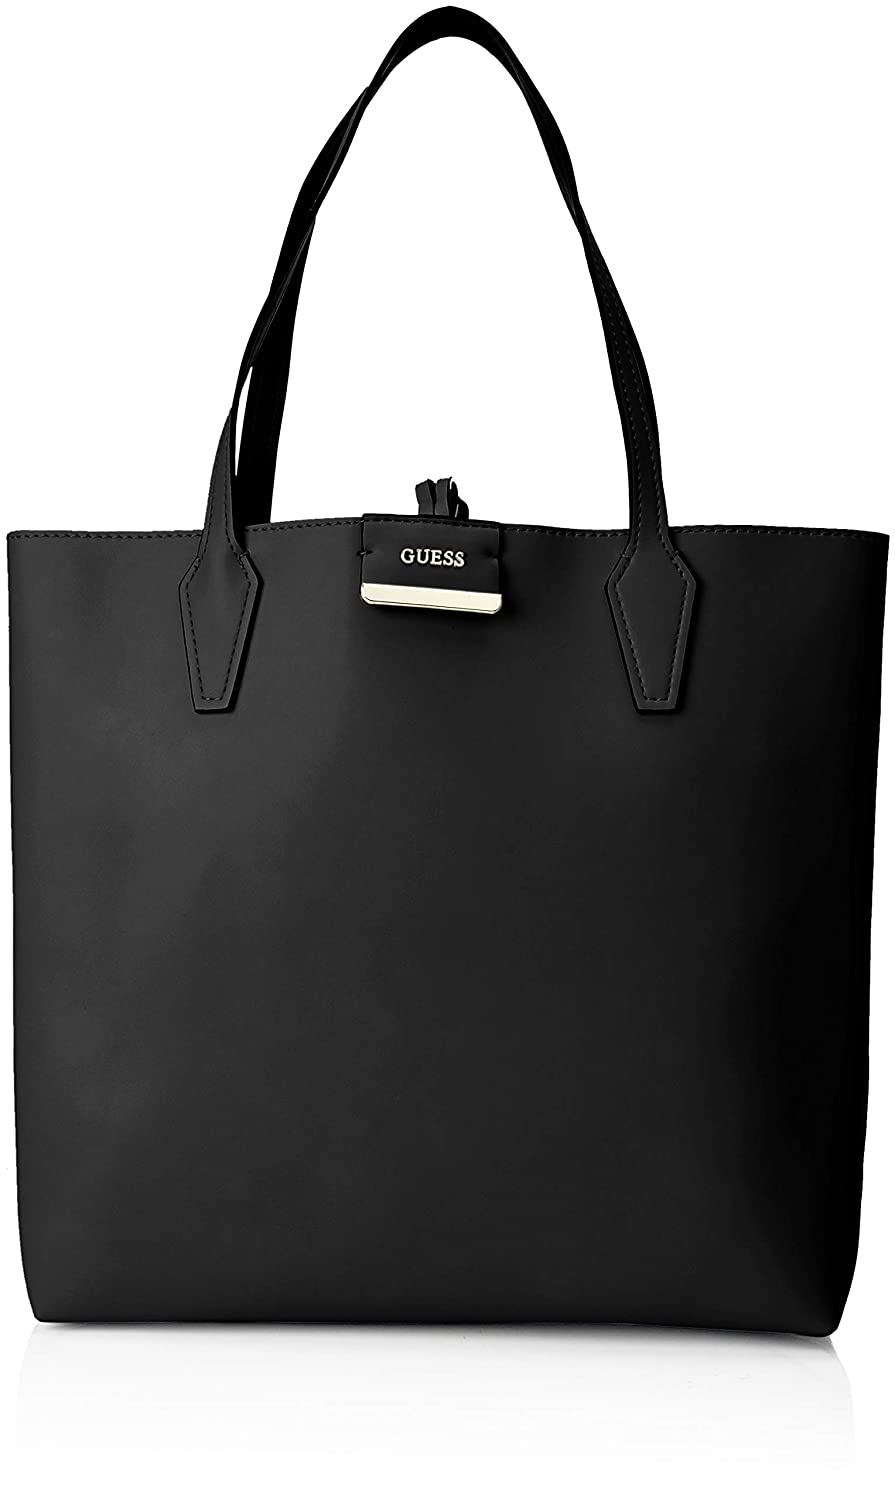 Guess Damen Bobbi Tote-Bag, 42.5x35x12.5 cm B07CPTYPLK Shopper